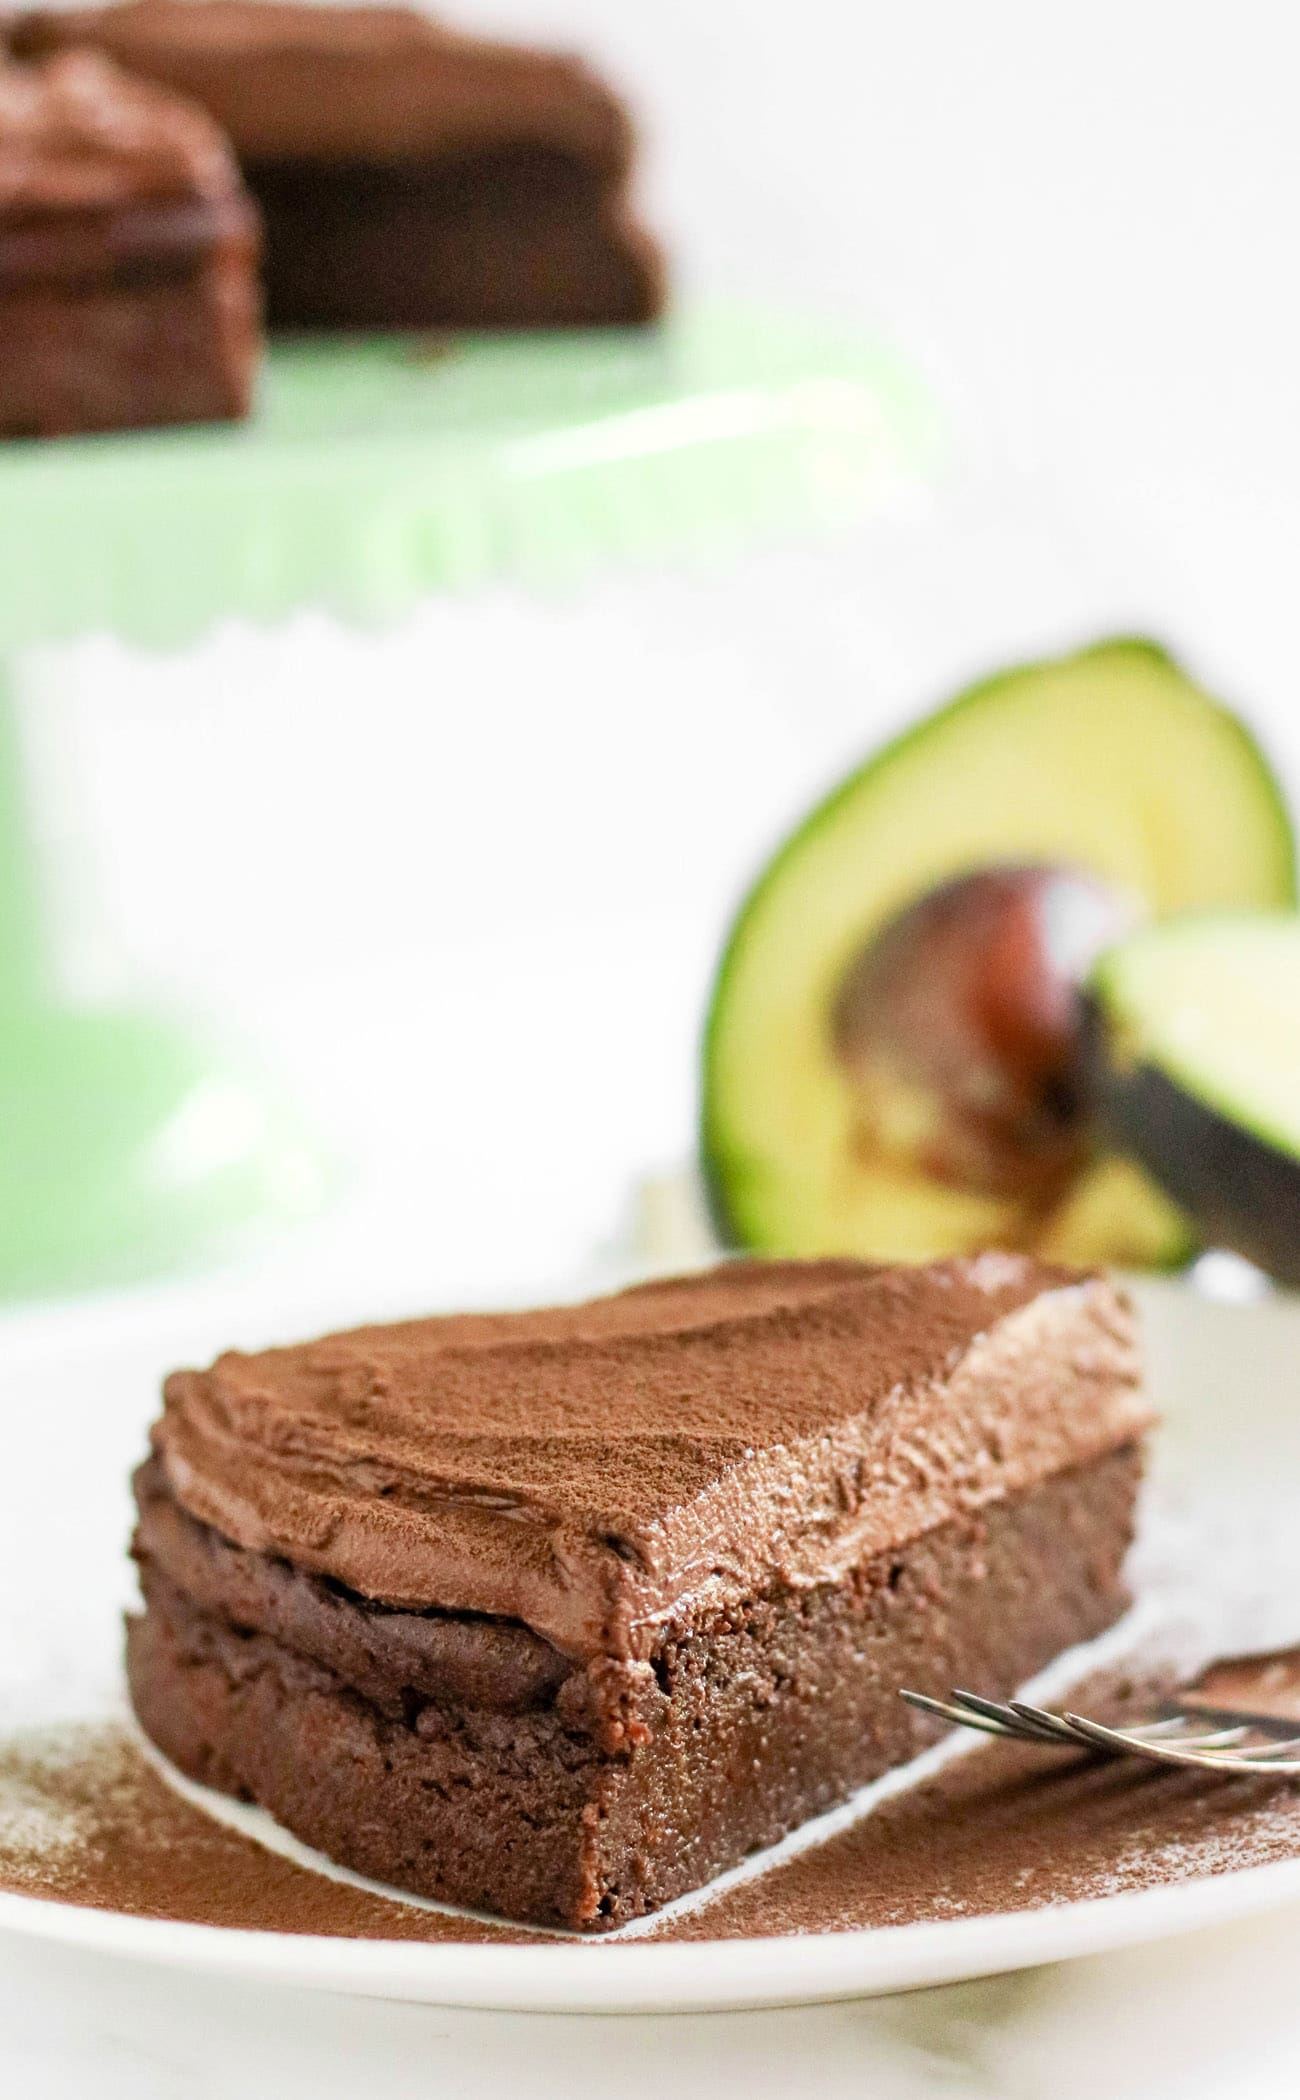 This healthier Chocolate Avocado Cake is super chocolatey, perfectly sweet, and nutritionally balanced with healthy fats, whole grains, lots of fiber, and a hit of protein! It's just as rich, and chocolatey as classic chocolate cake, except this is made without the butter, oil, regular white sugar, and bleached flour!